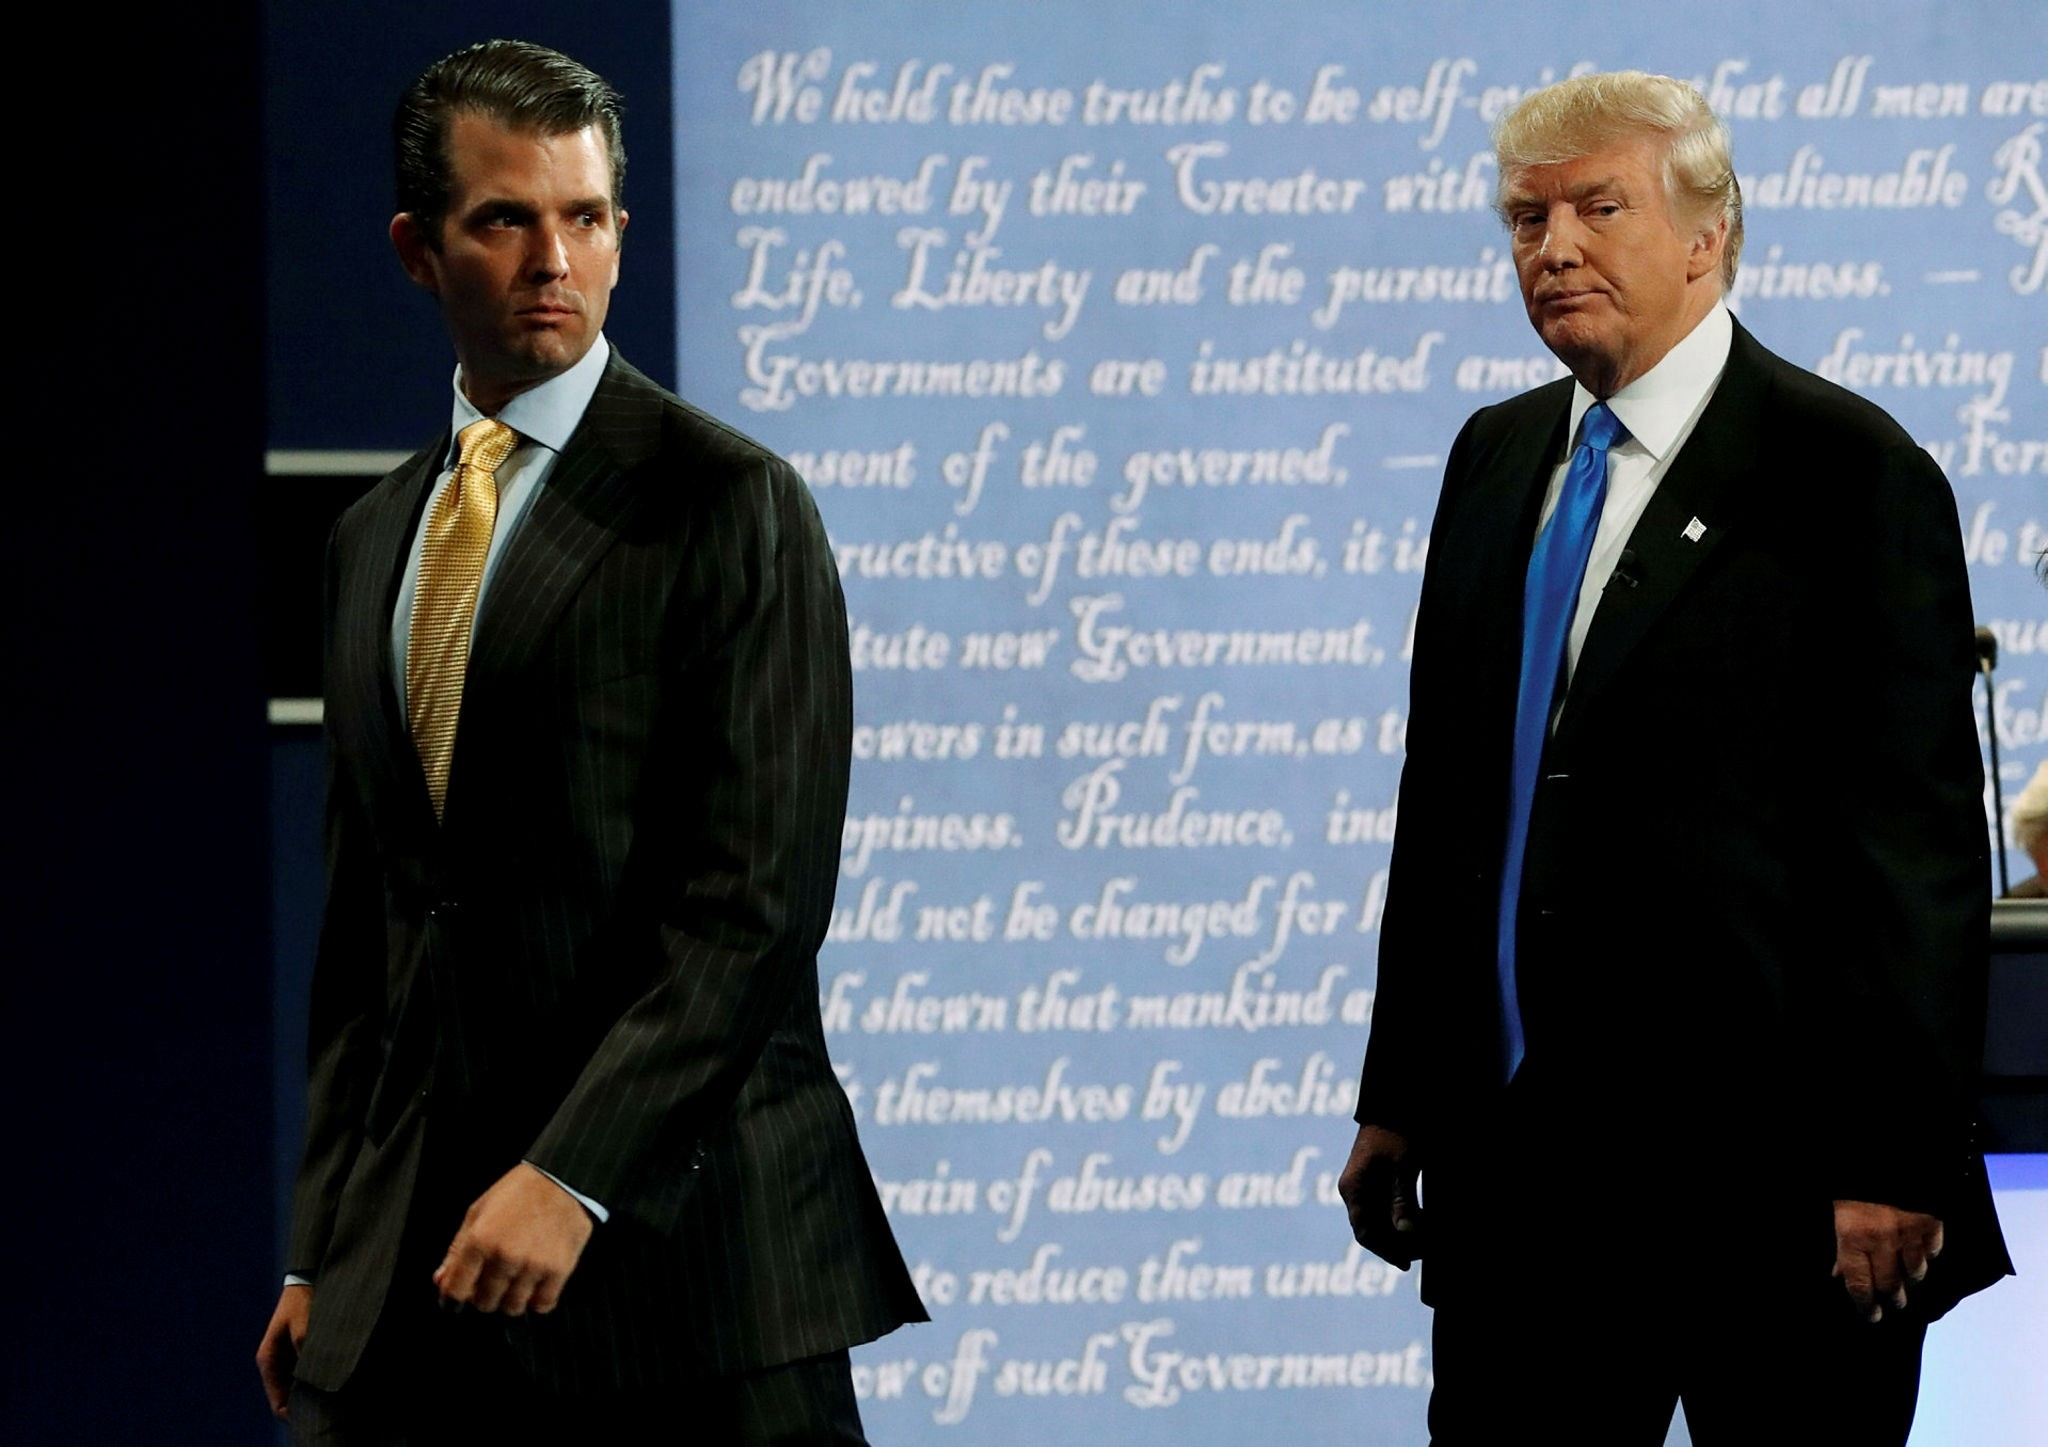 Donald Trump Jr. (L) walks off stage with his father Donald Trump after Trump's debate against Democratic nominee Hillary Clinton at Hofstra University in Hempstead, New York, U.S. September 26, 2016. (Reuters Photo)